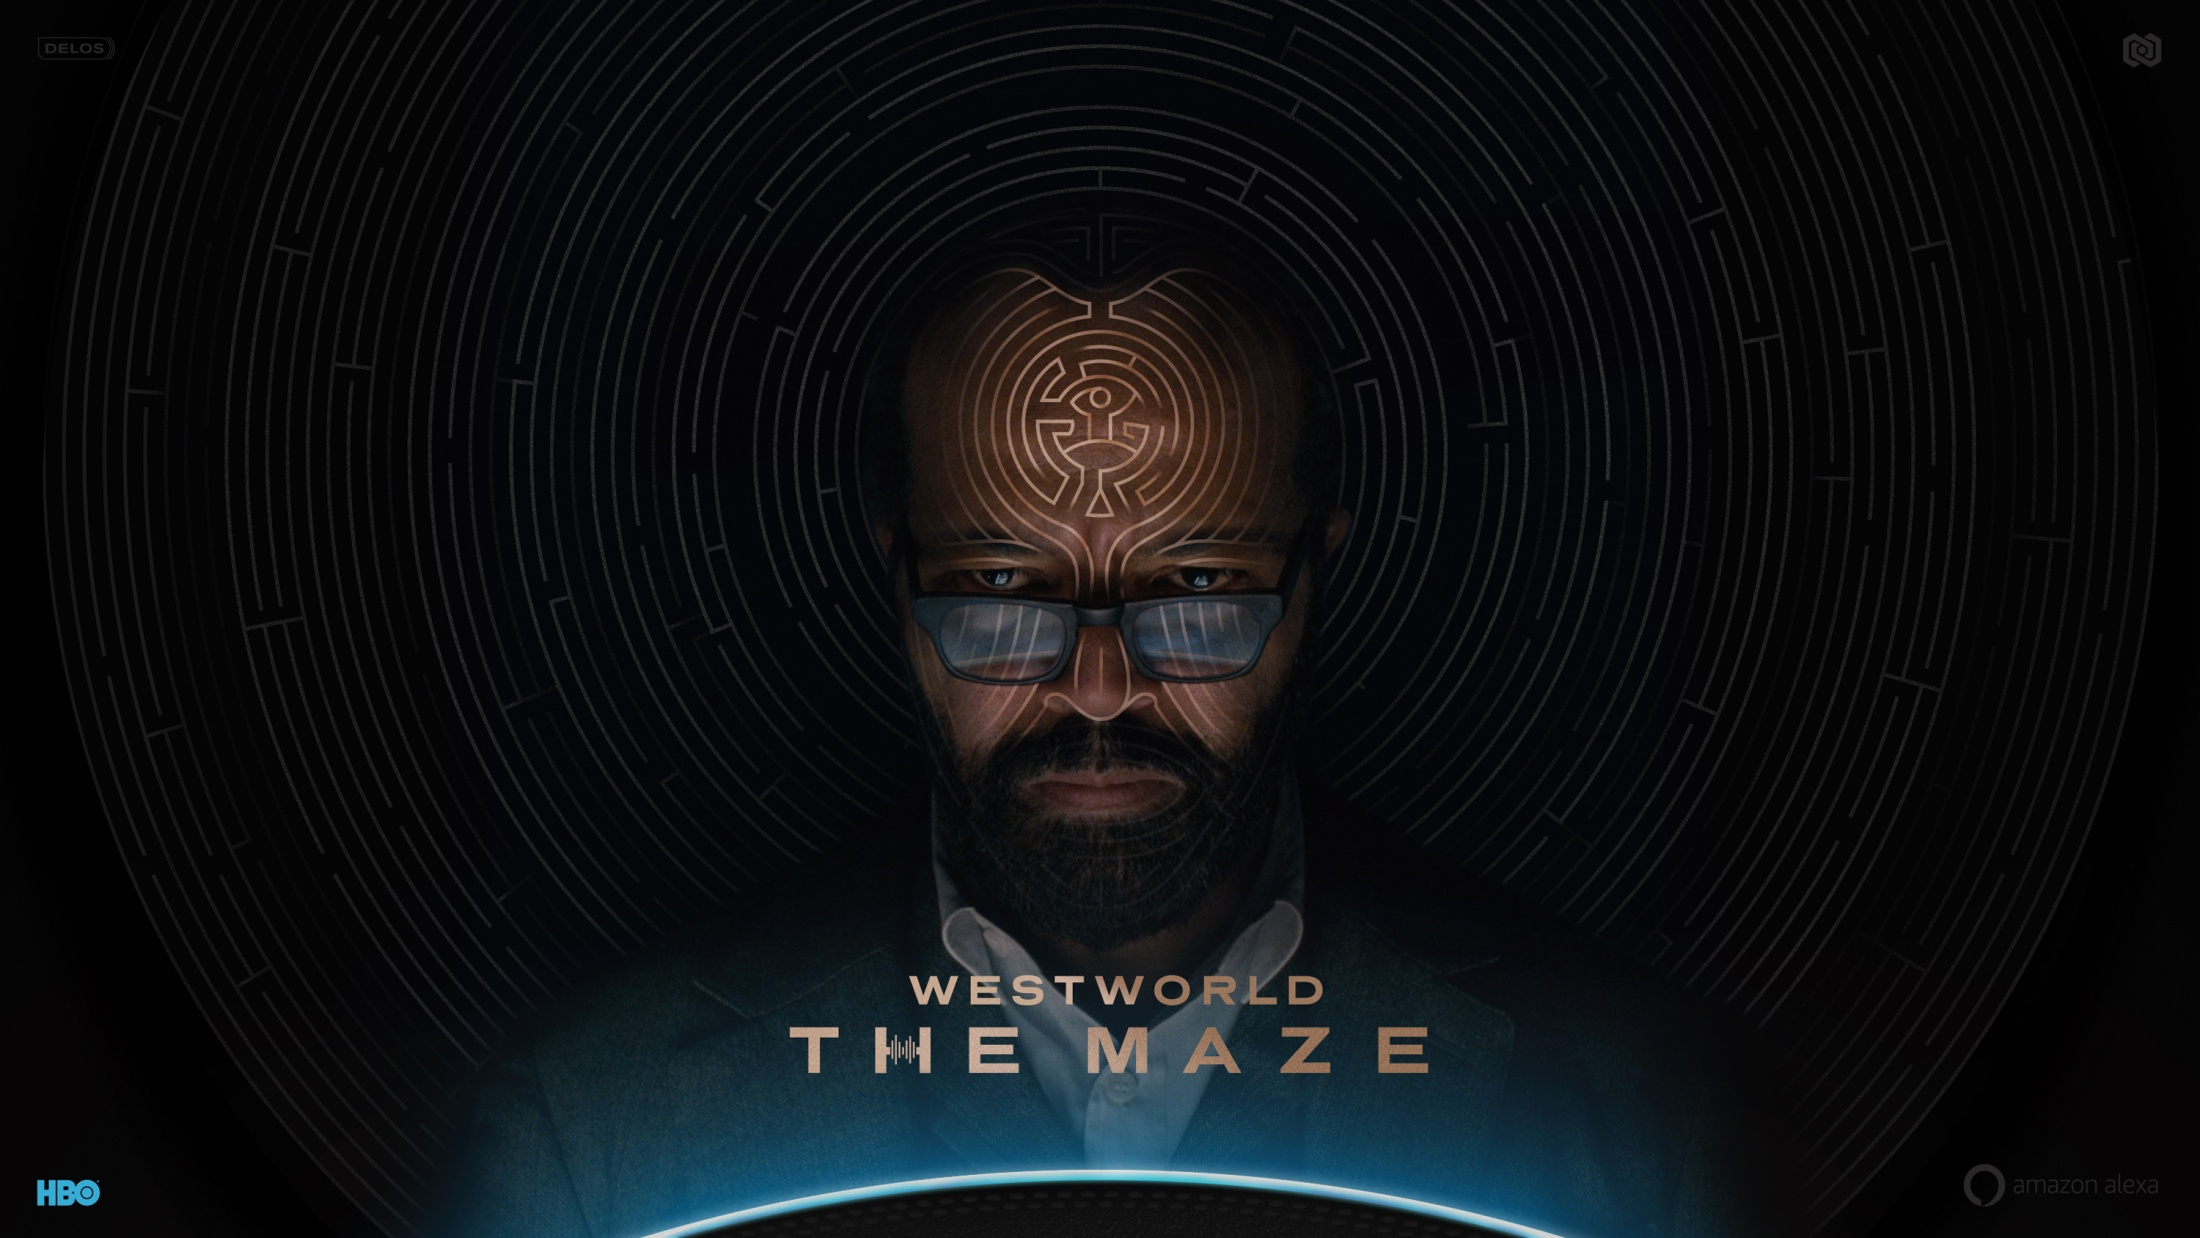 Image Media for Westworld: The Maze